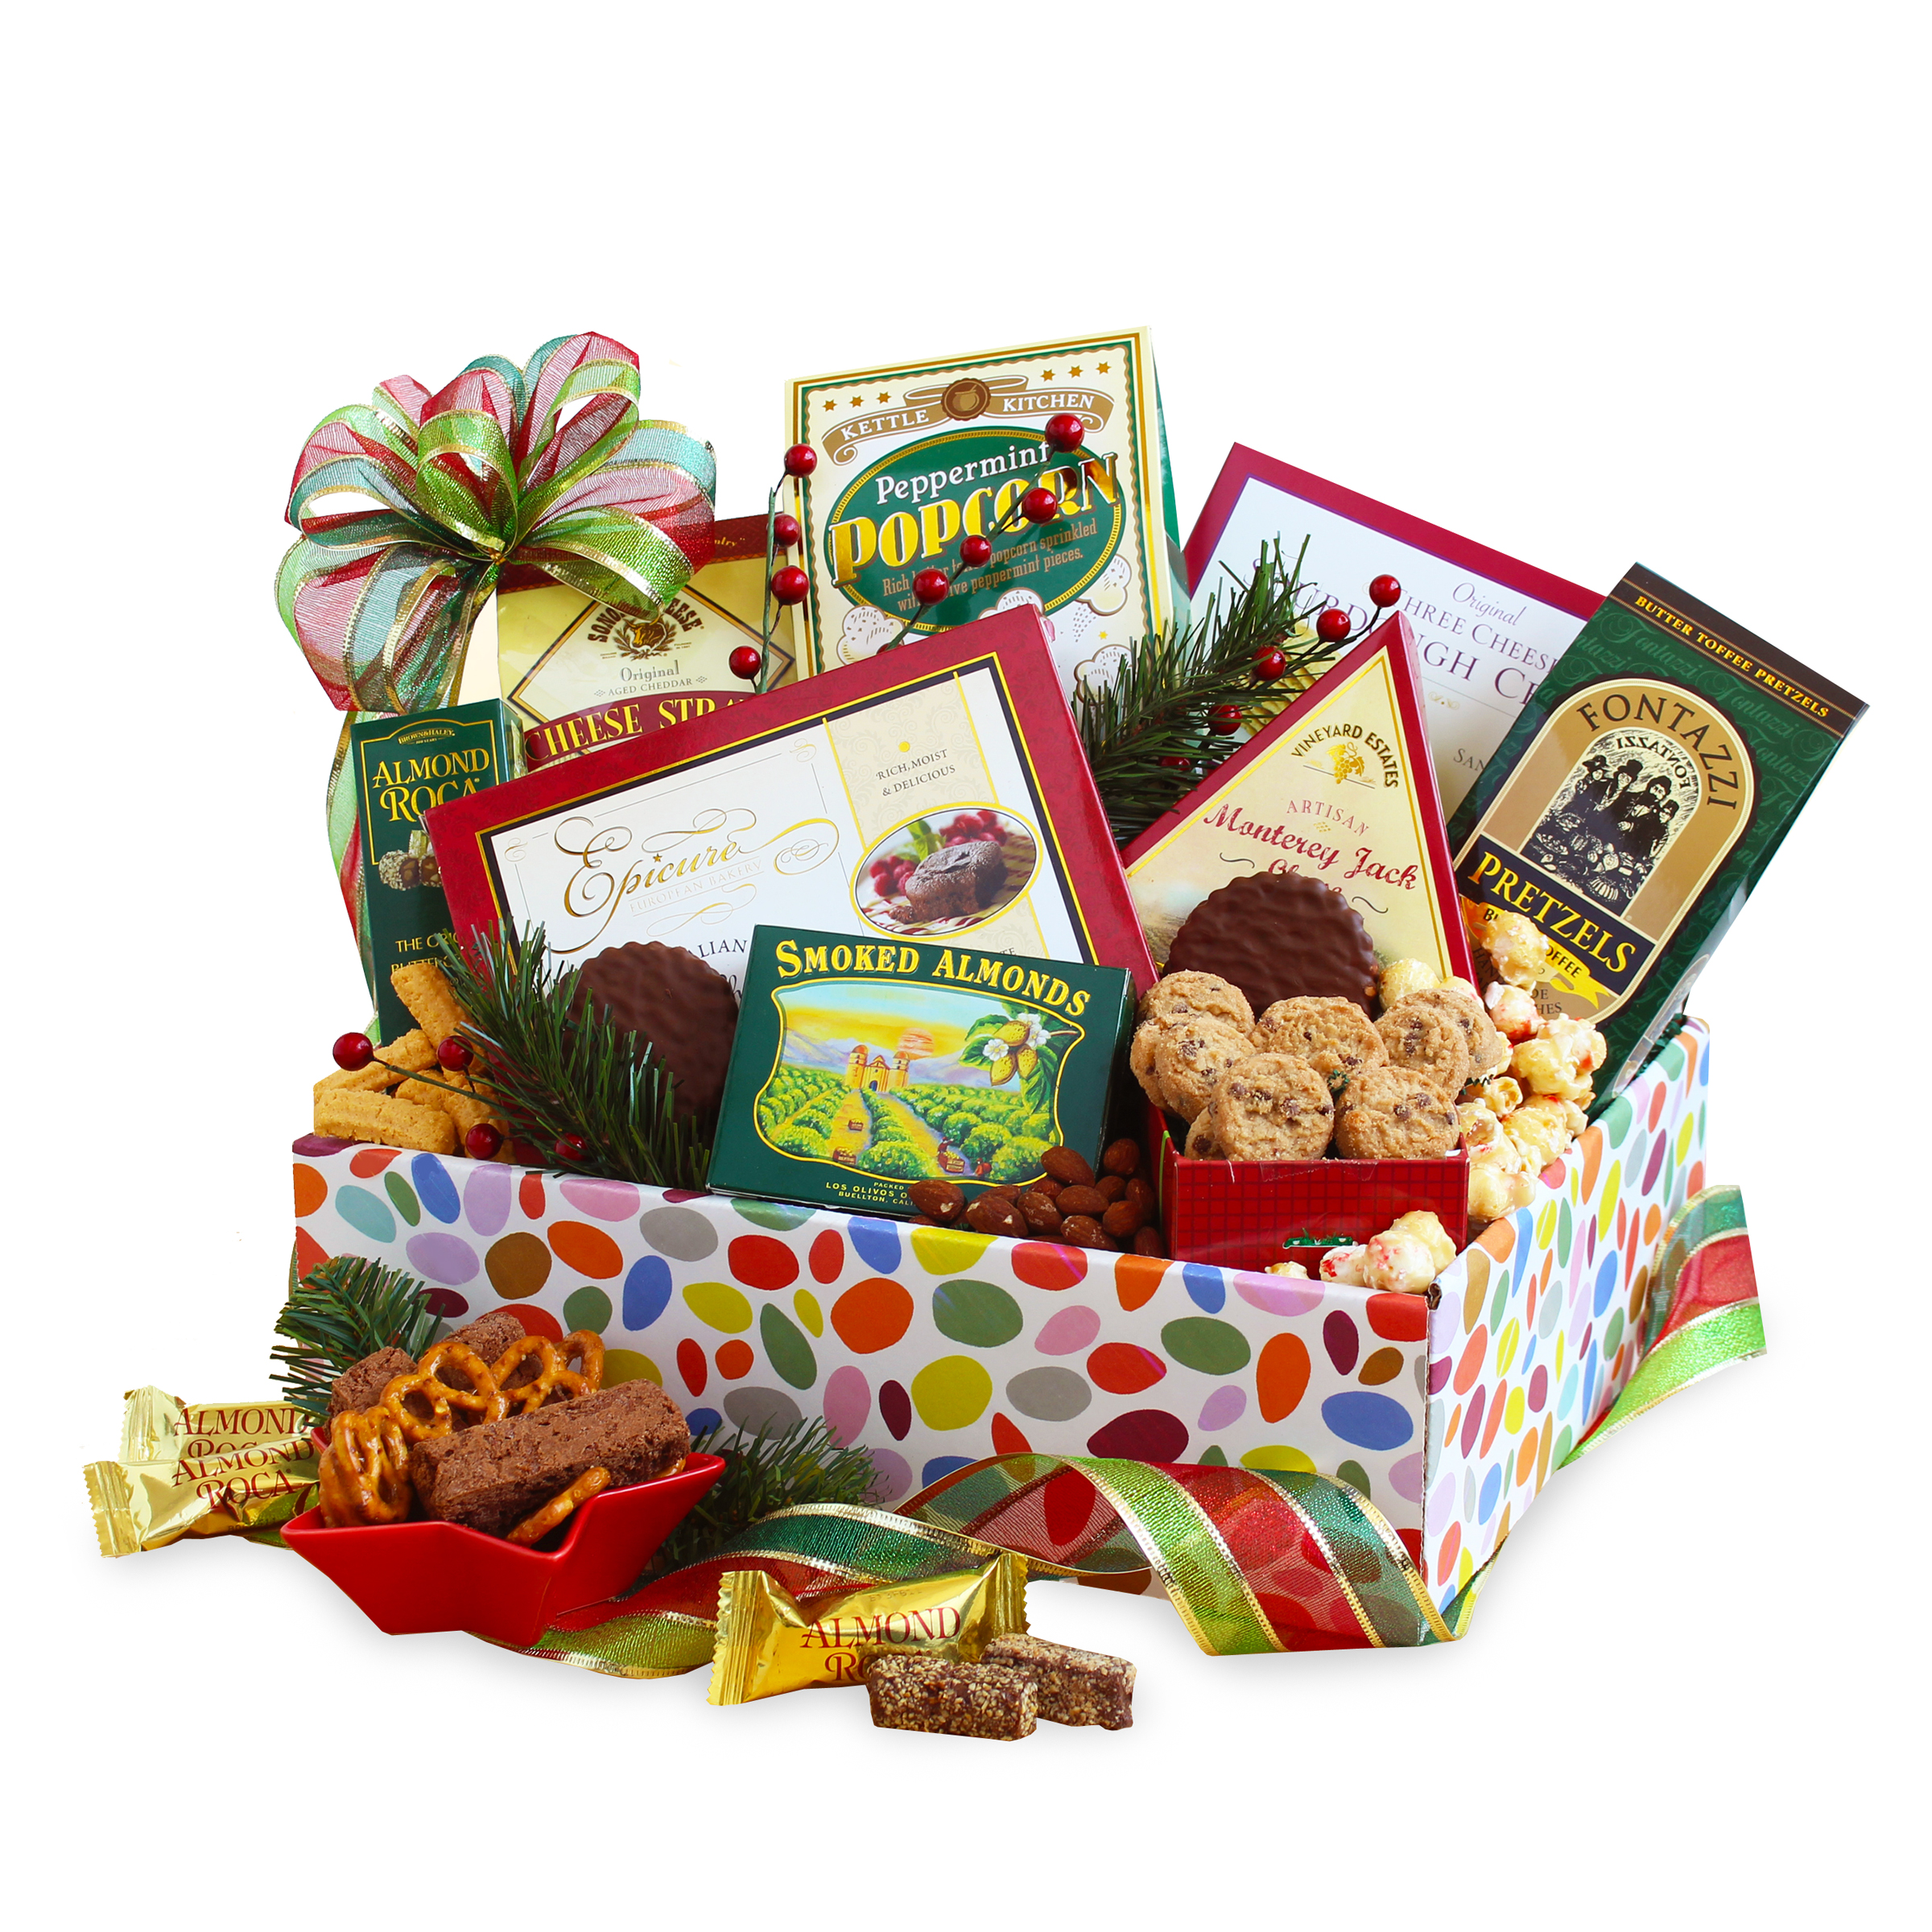 A California Delicious Christmas Lights Gourmet Gift Box Assortment For Her